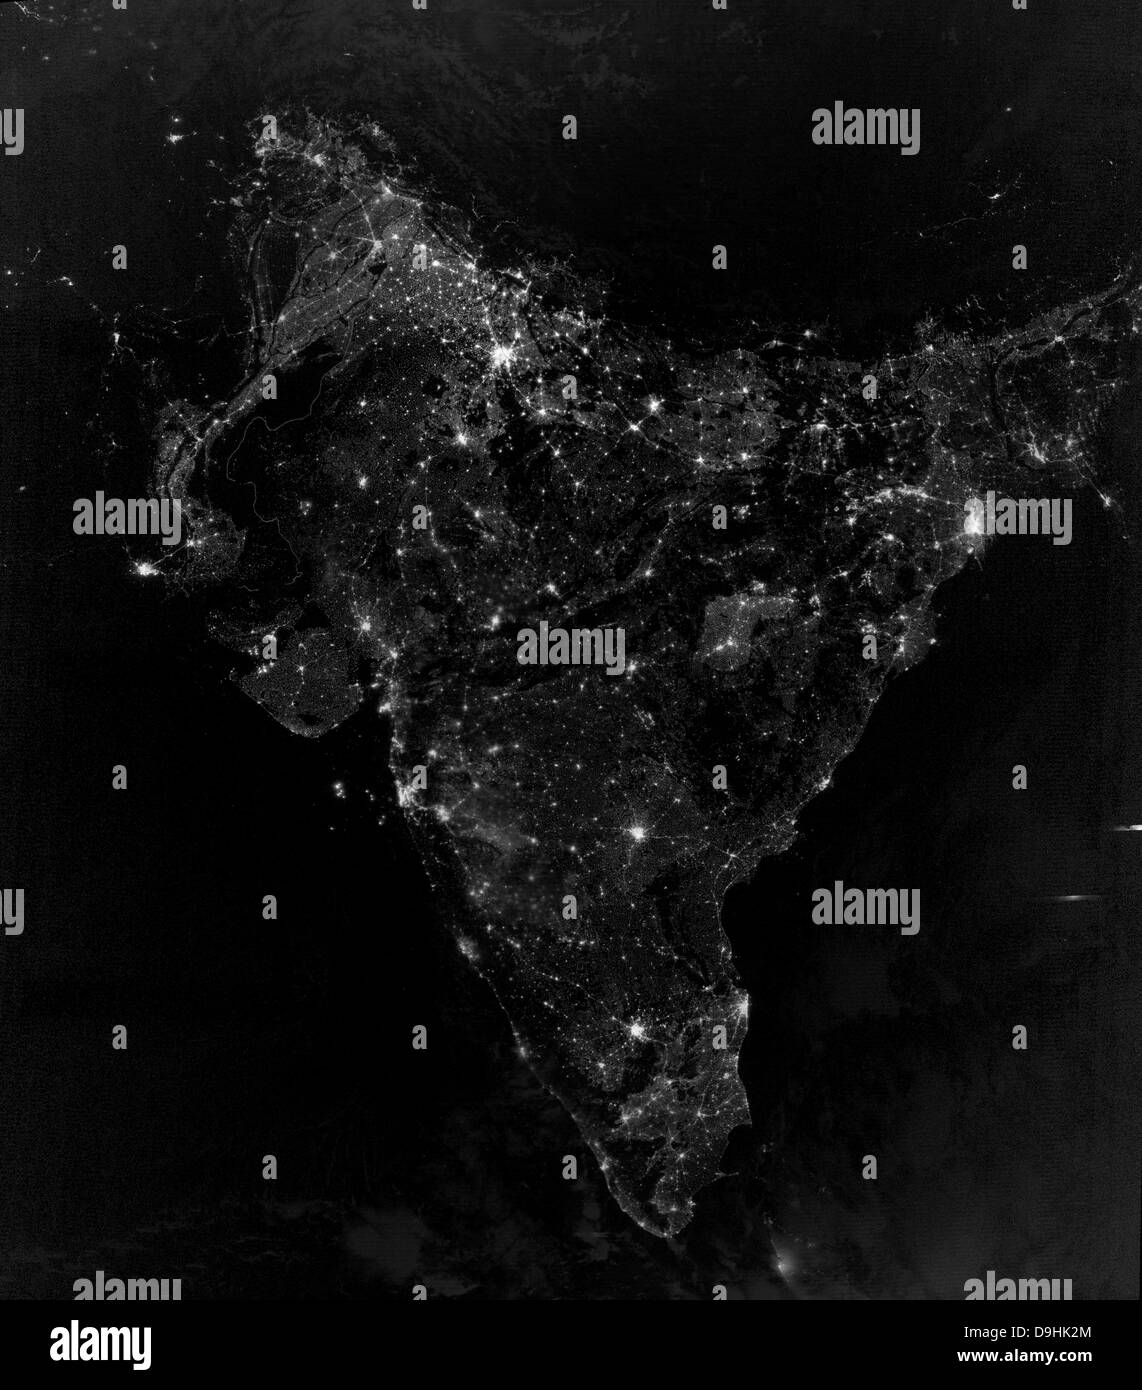 November 12, 2012 - Satellite view of city, village, and highway lights in India. - Stock Image